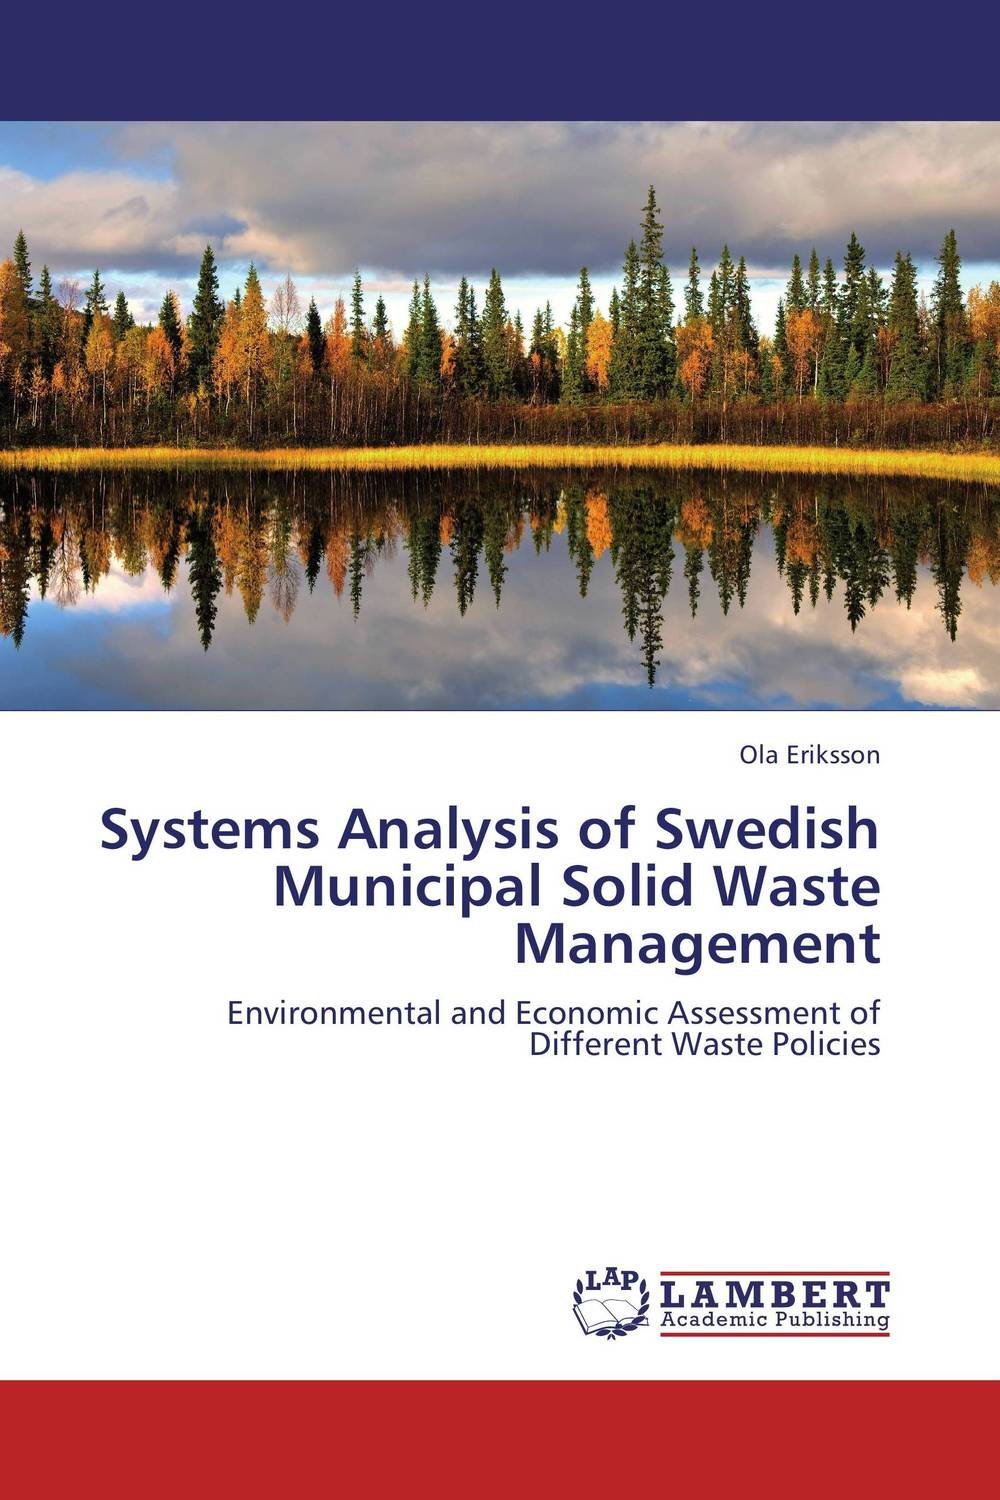 Systems Analysis of Swedish Municipal Solid Waste Management christina fitzgerald инструмент для удаления кутикулы precision